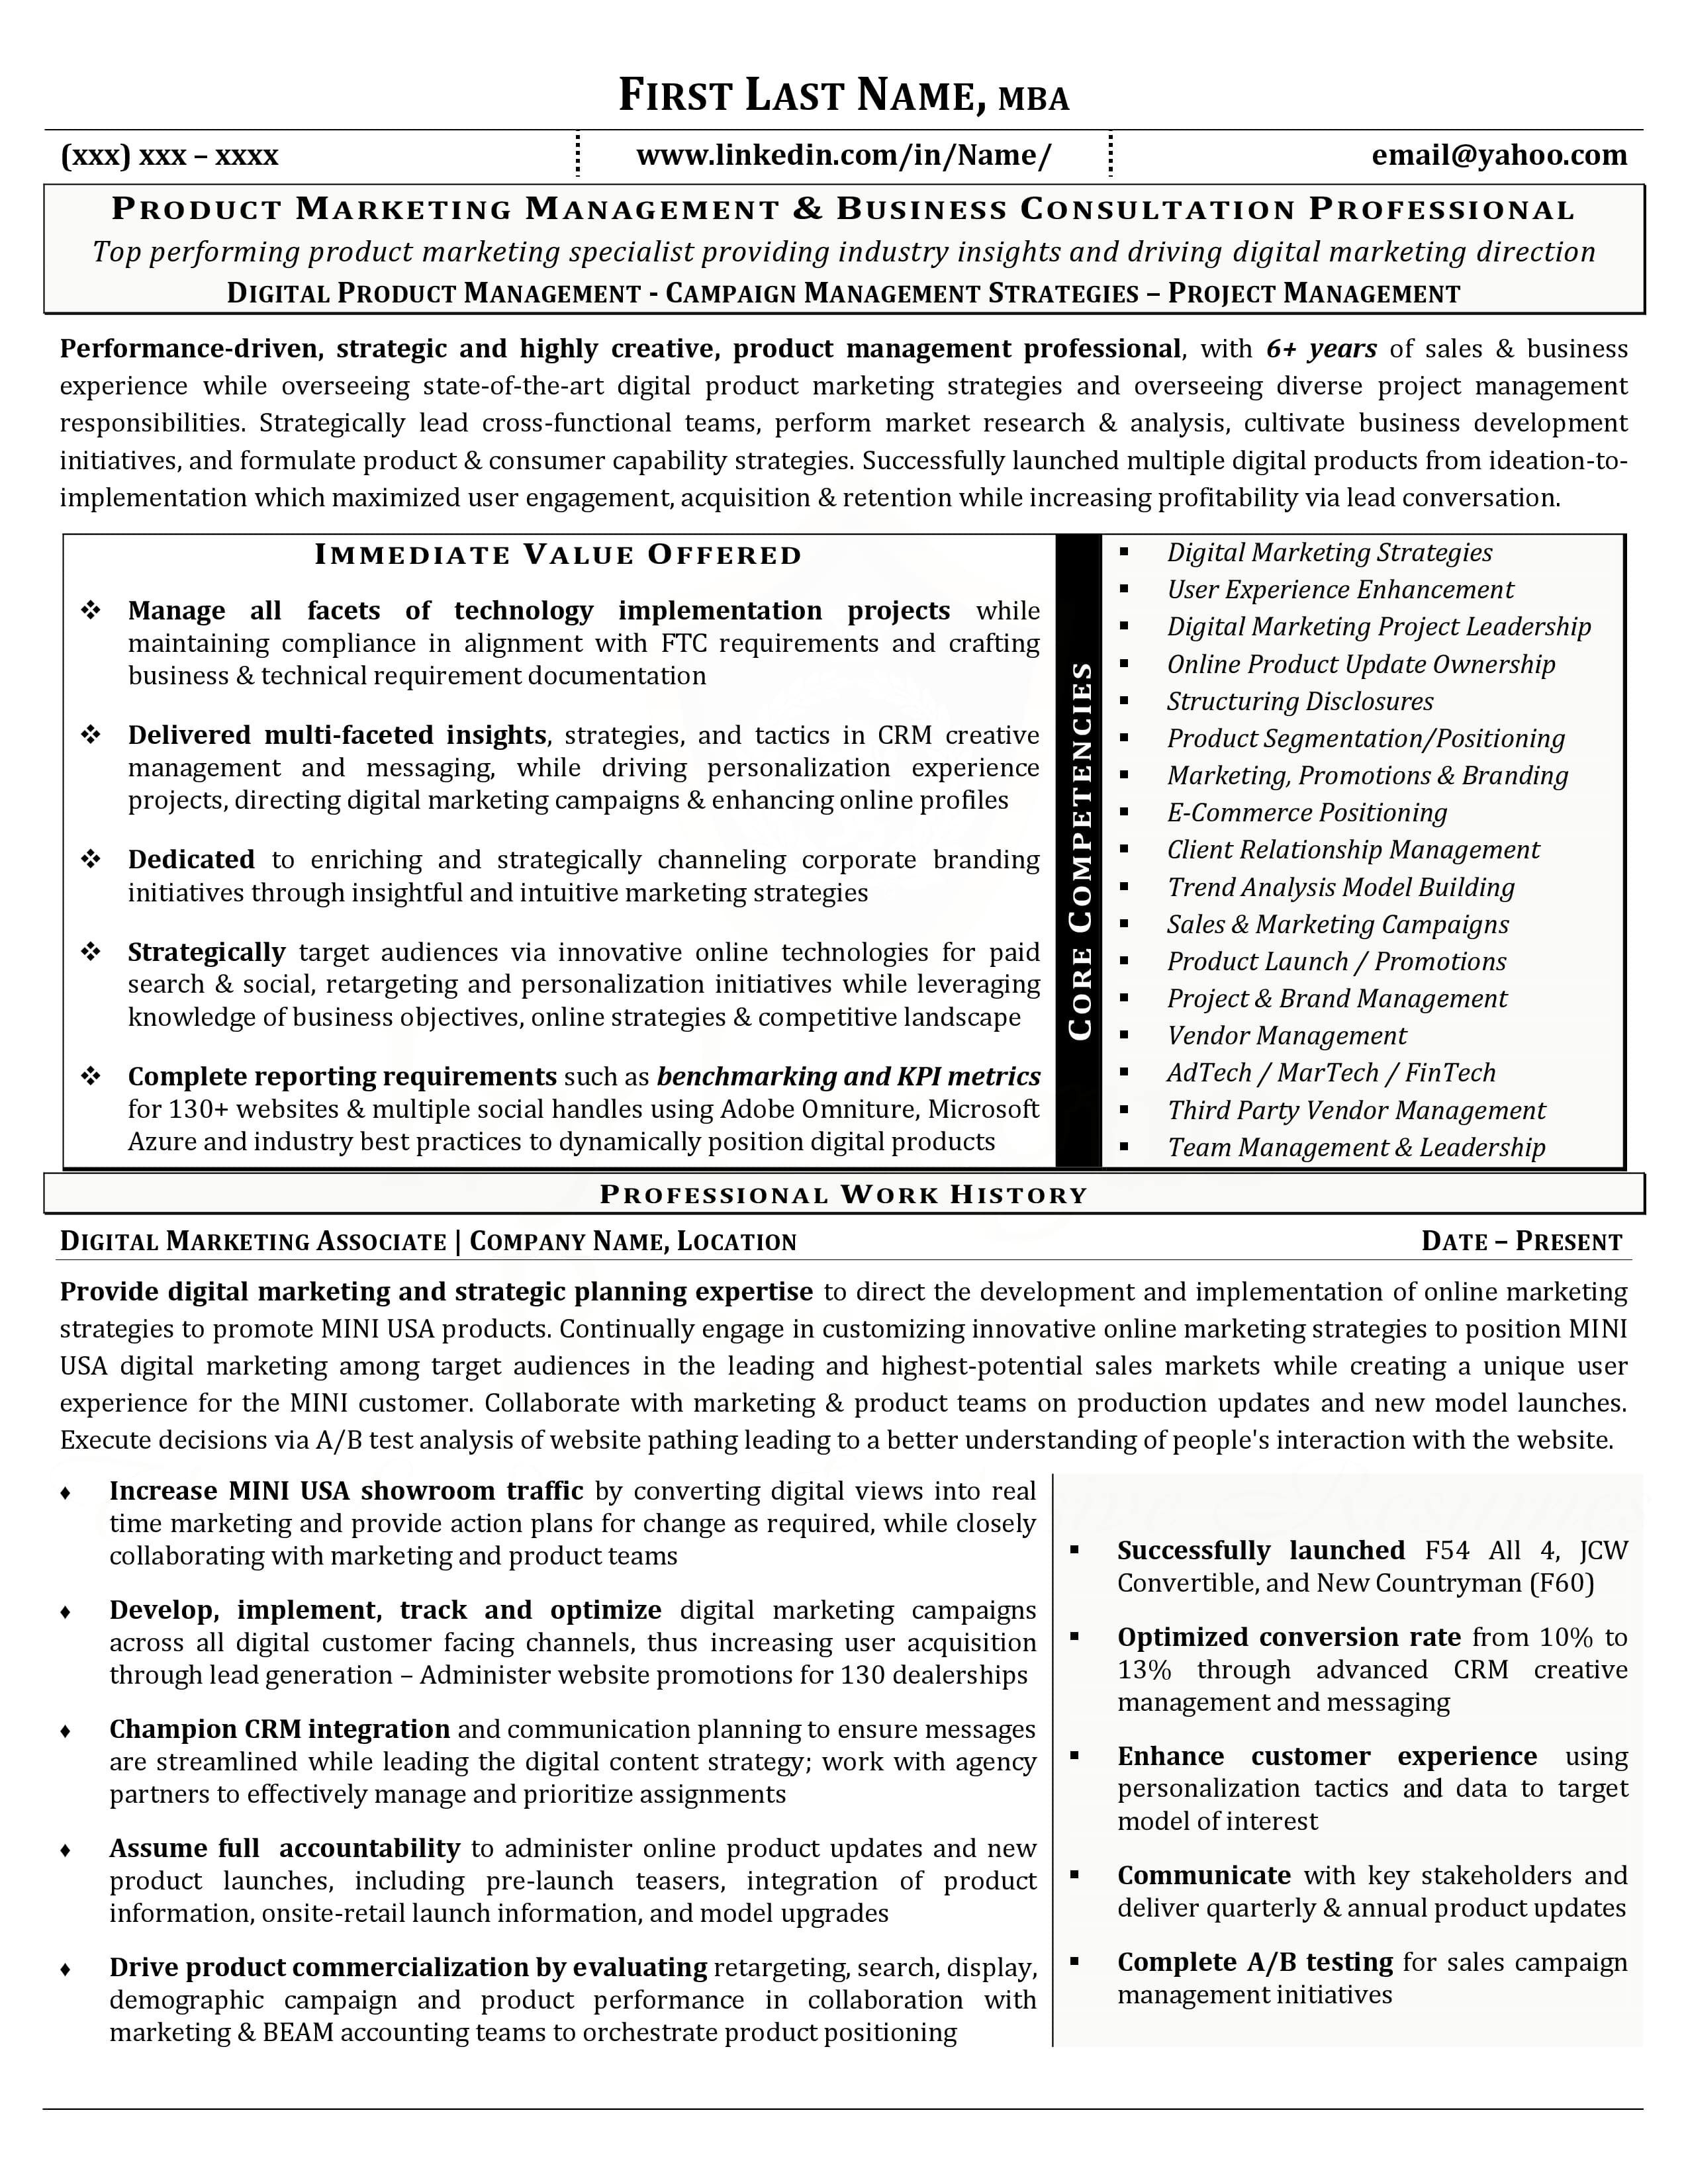 Core Competencies Resume - Core Petencies Resume Unique Core Petencies Resume Examples